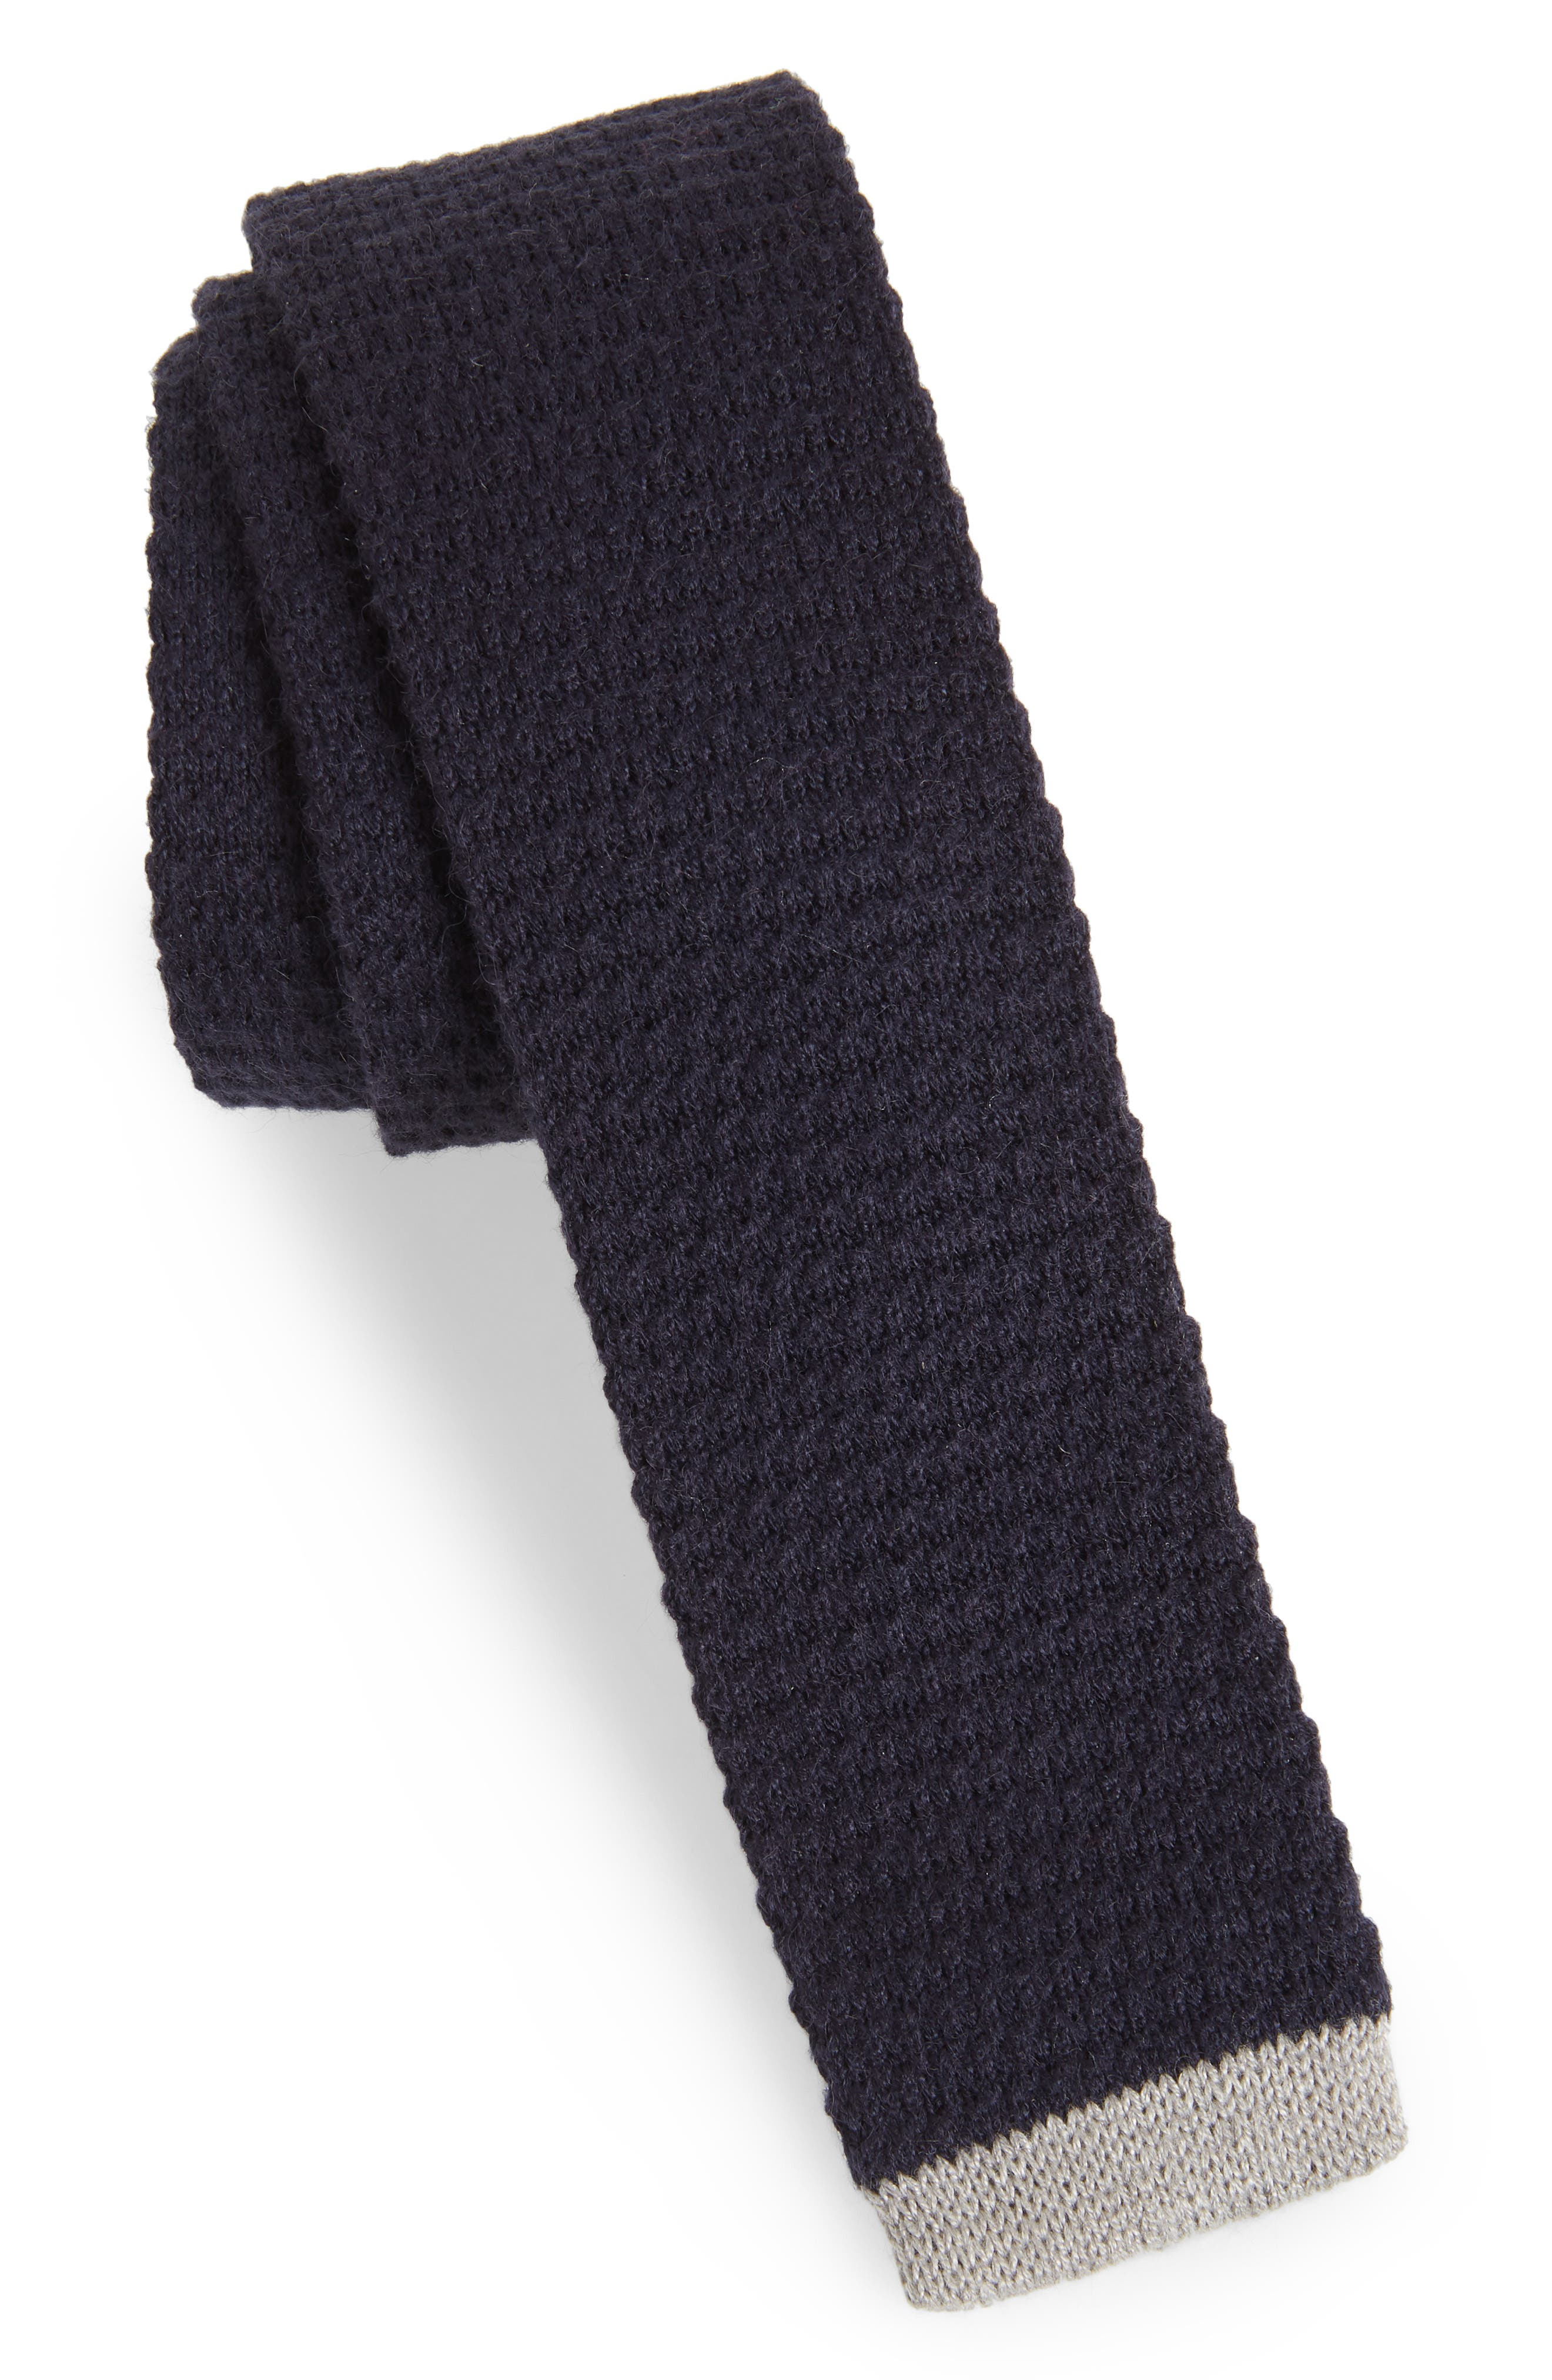 Belvin Knit Skinny Tie,                         Main,                         color, Navy